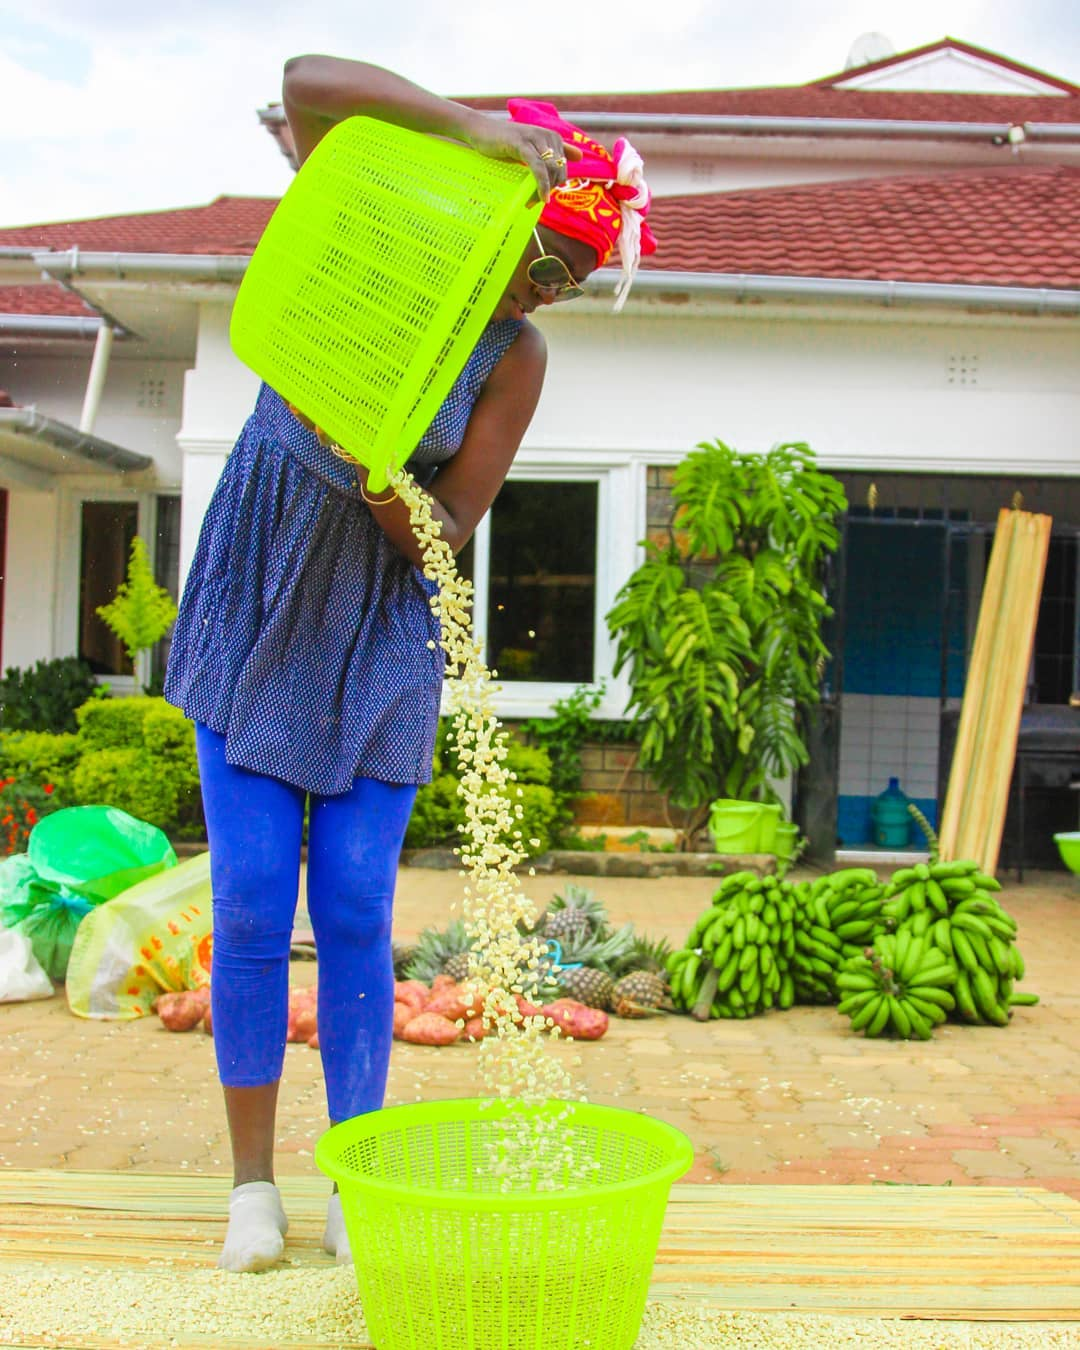 36807891 207580493257307 8448398703584083968 n - '…an orphan at 25 and your mjuls is doing rounds?' Akothee blasts bloodsuckers